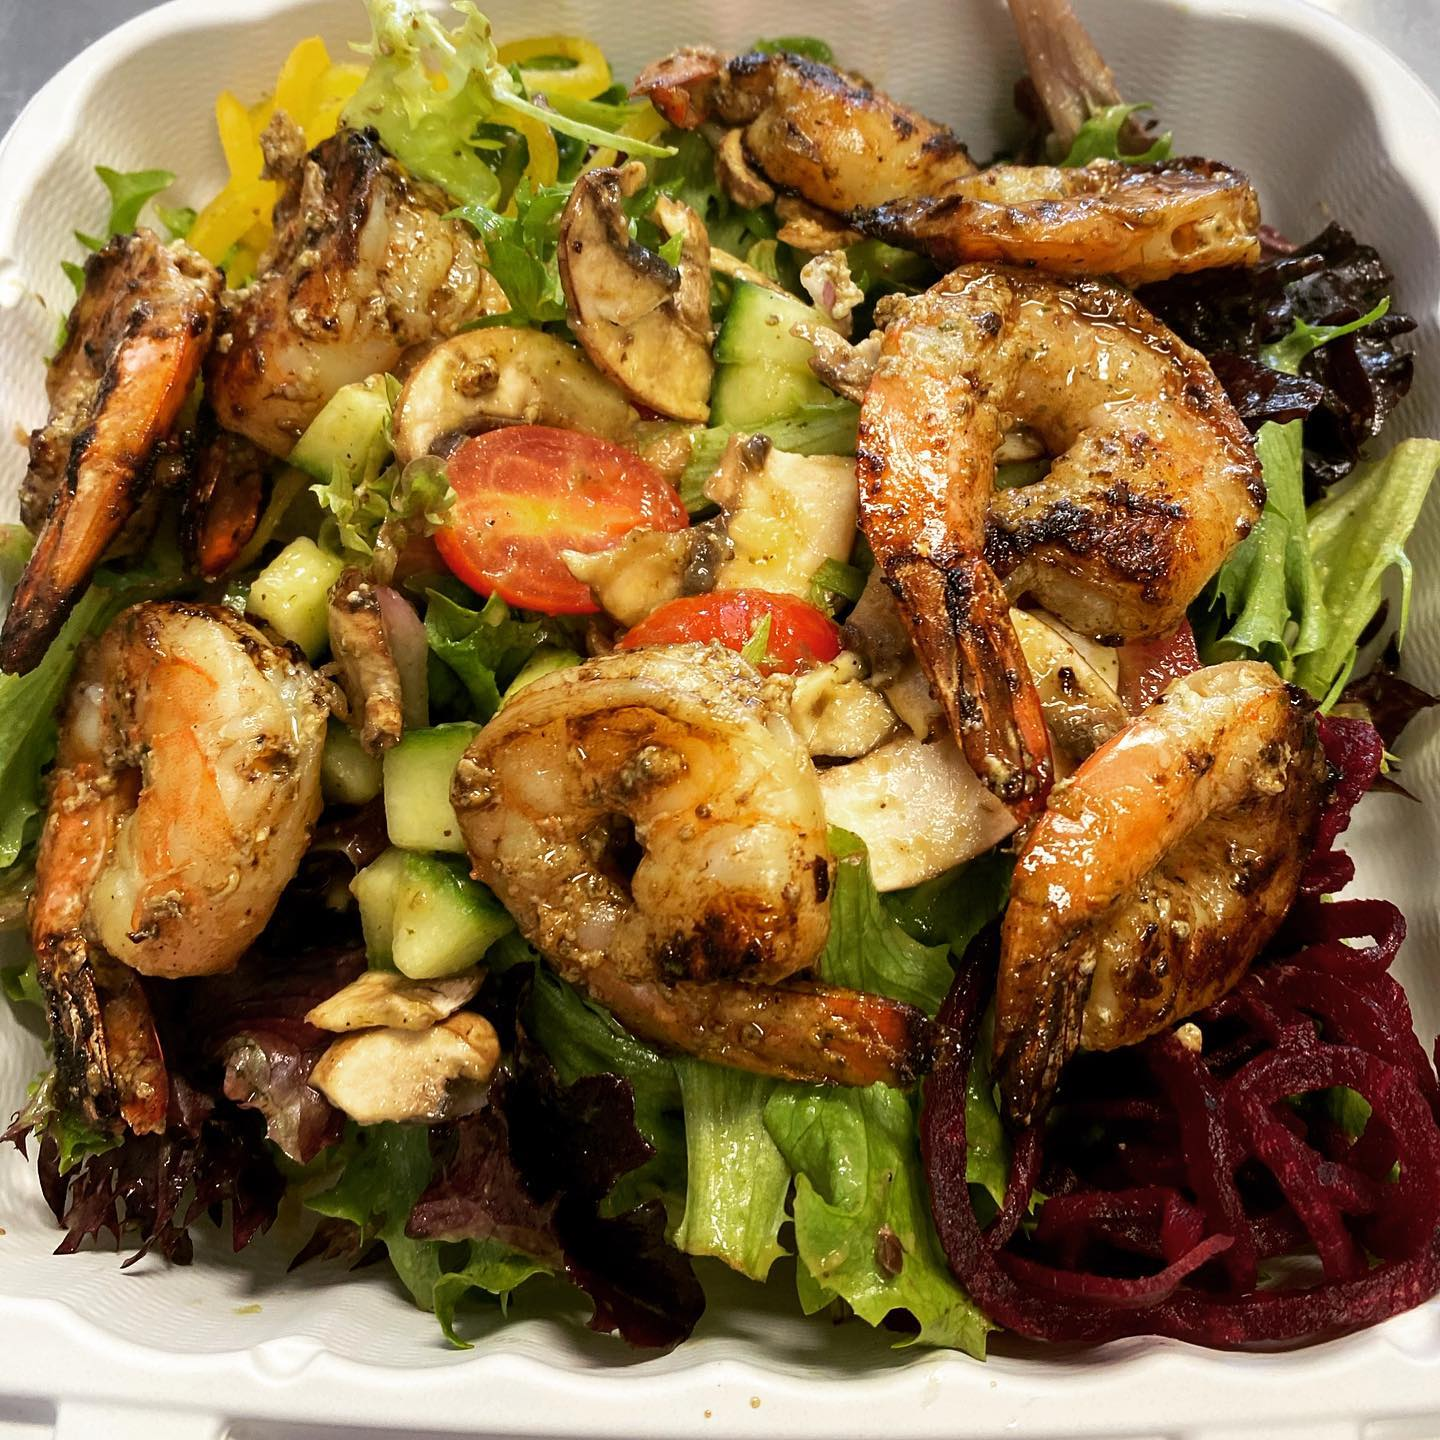 mixed greens topped with grilled shrimp and tomatoes